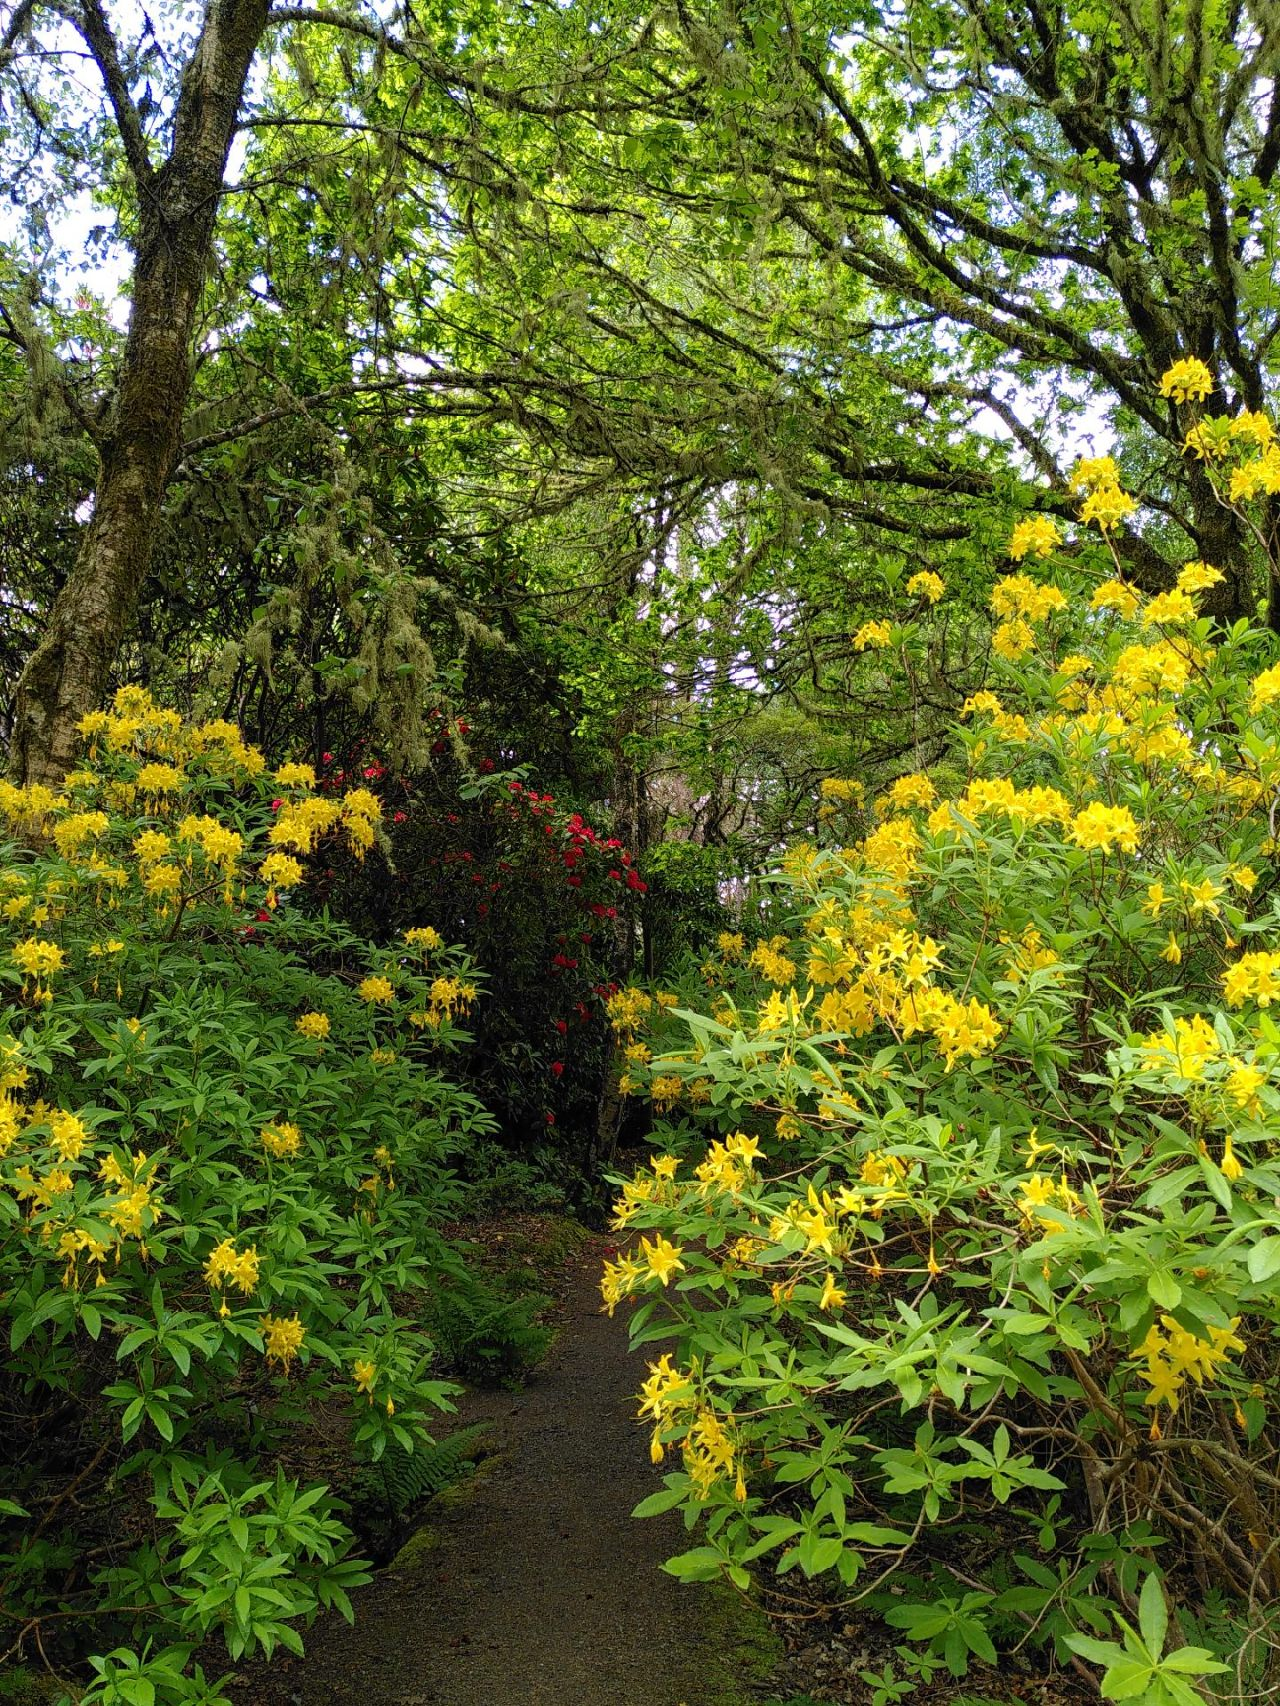 Yellow flowered rhody, these smelled similar to marijuana. Bright flowers cluster at the end of the rhody branches, forming a gate along the path. Further along the path is another rhody with vibrant red flowers. The background and canopy is filled with trees and foliage giving a jungle feel.